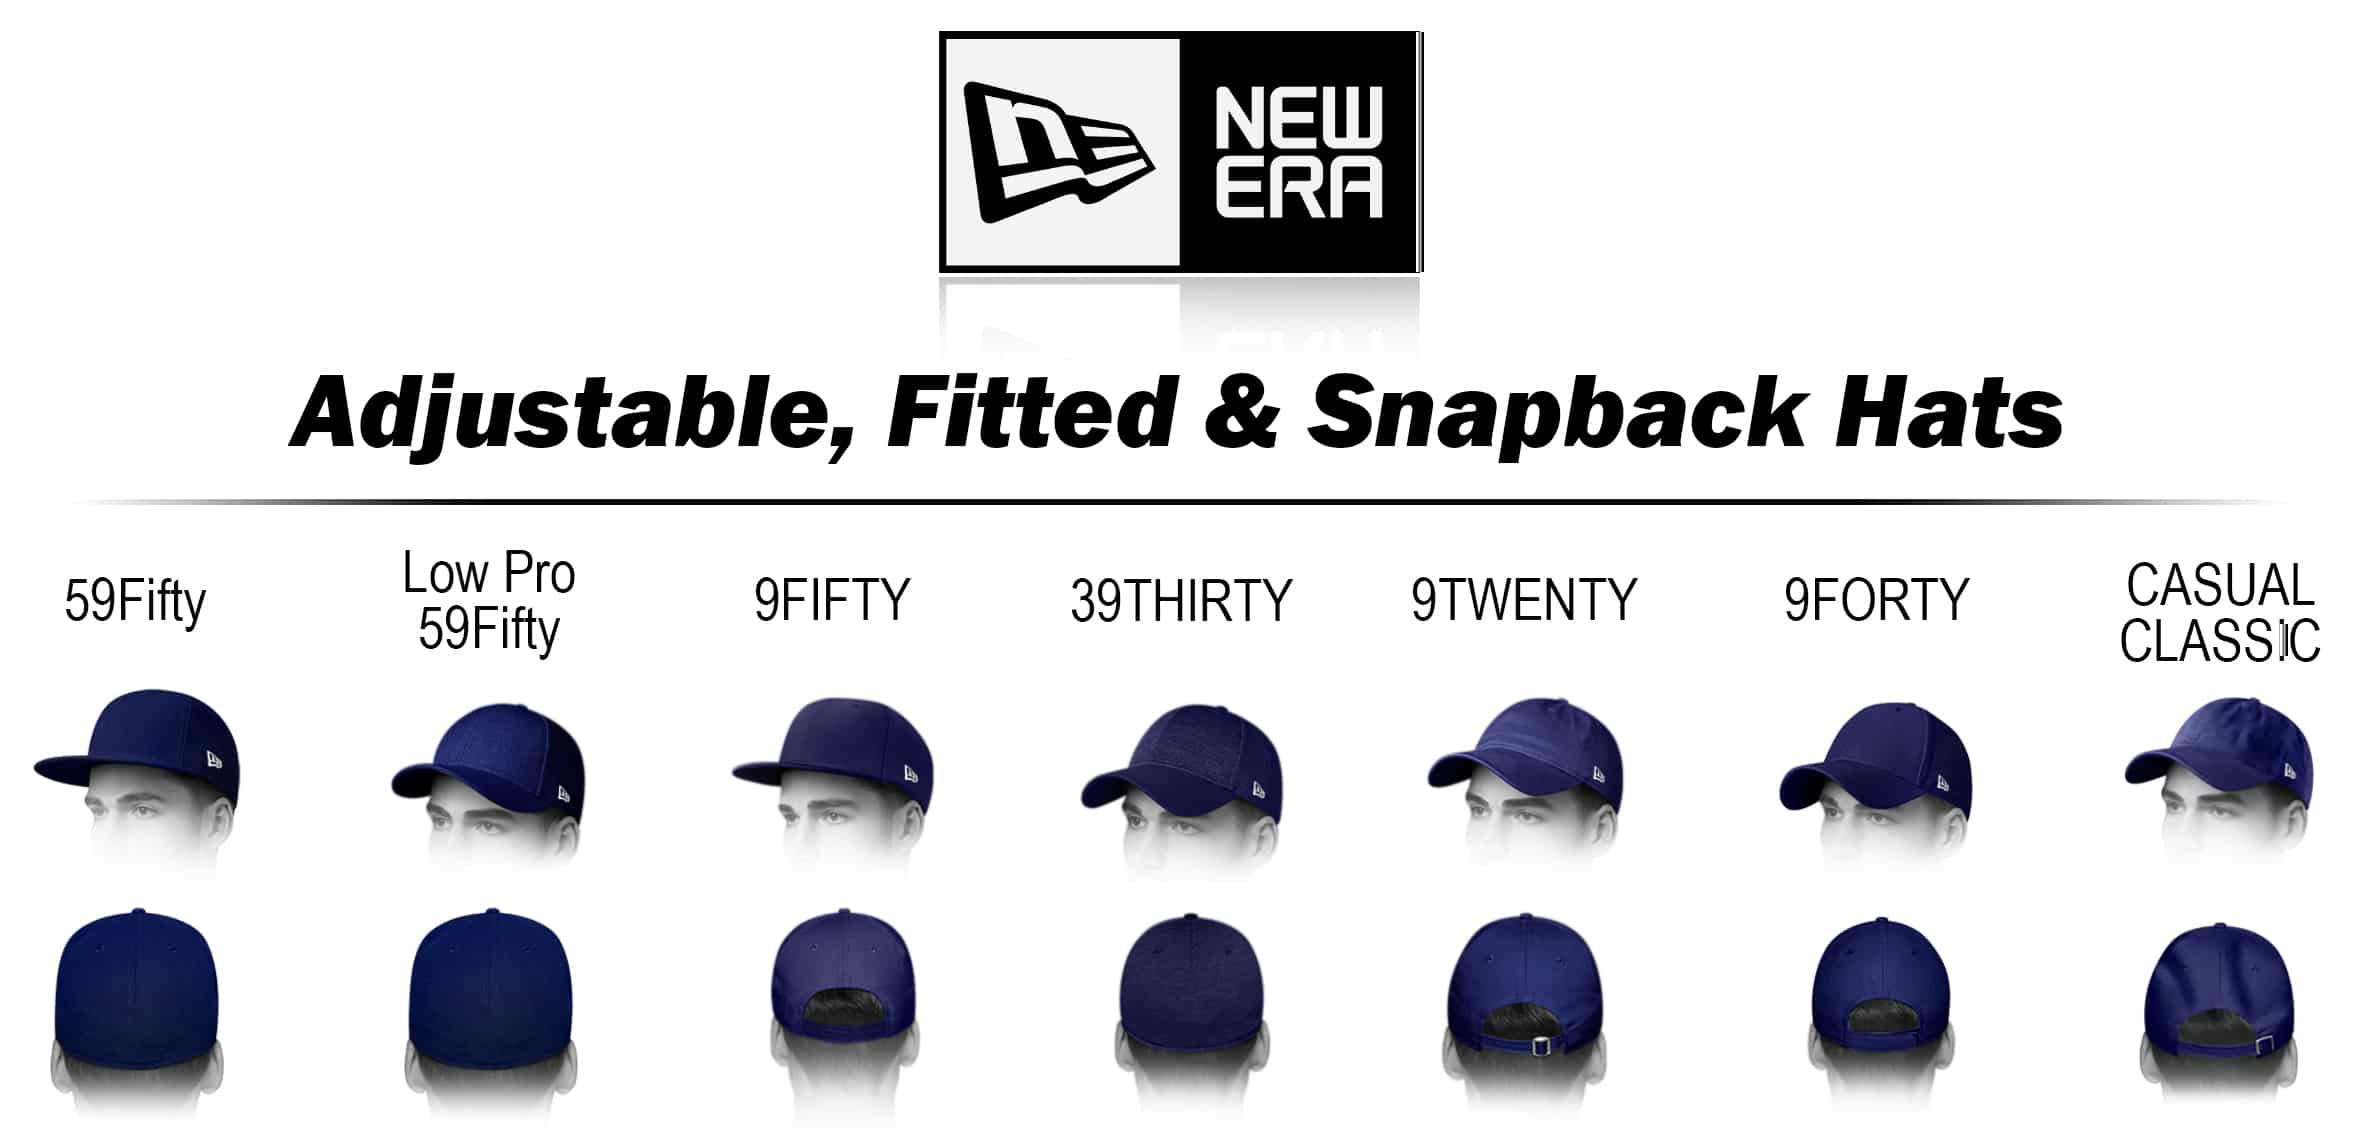 New Era HatStyles